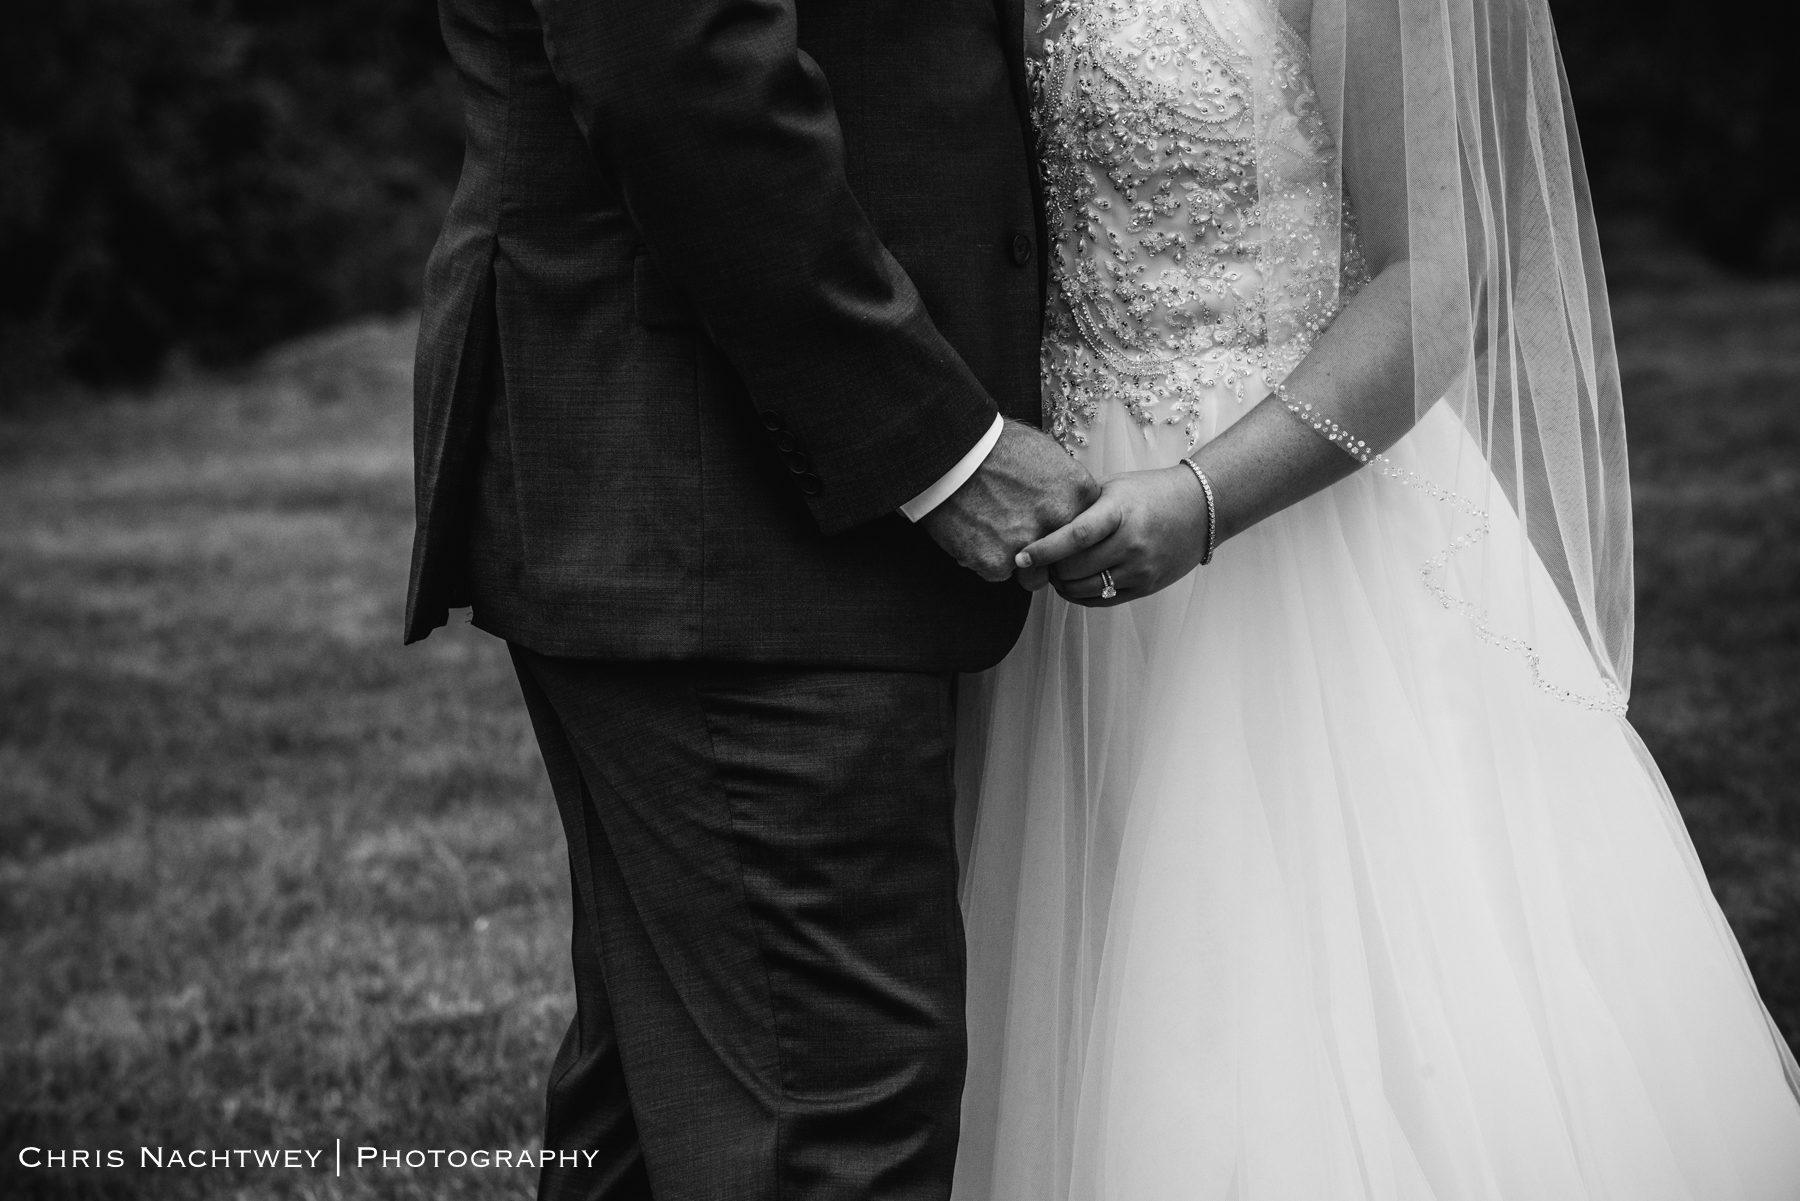 wedding-photographers-connecticut-affordable-chris-nachtwey-photography-2019-19.jpg